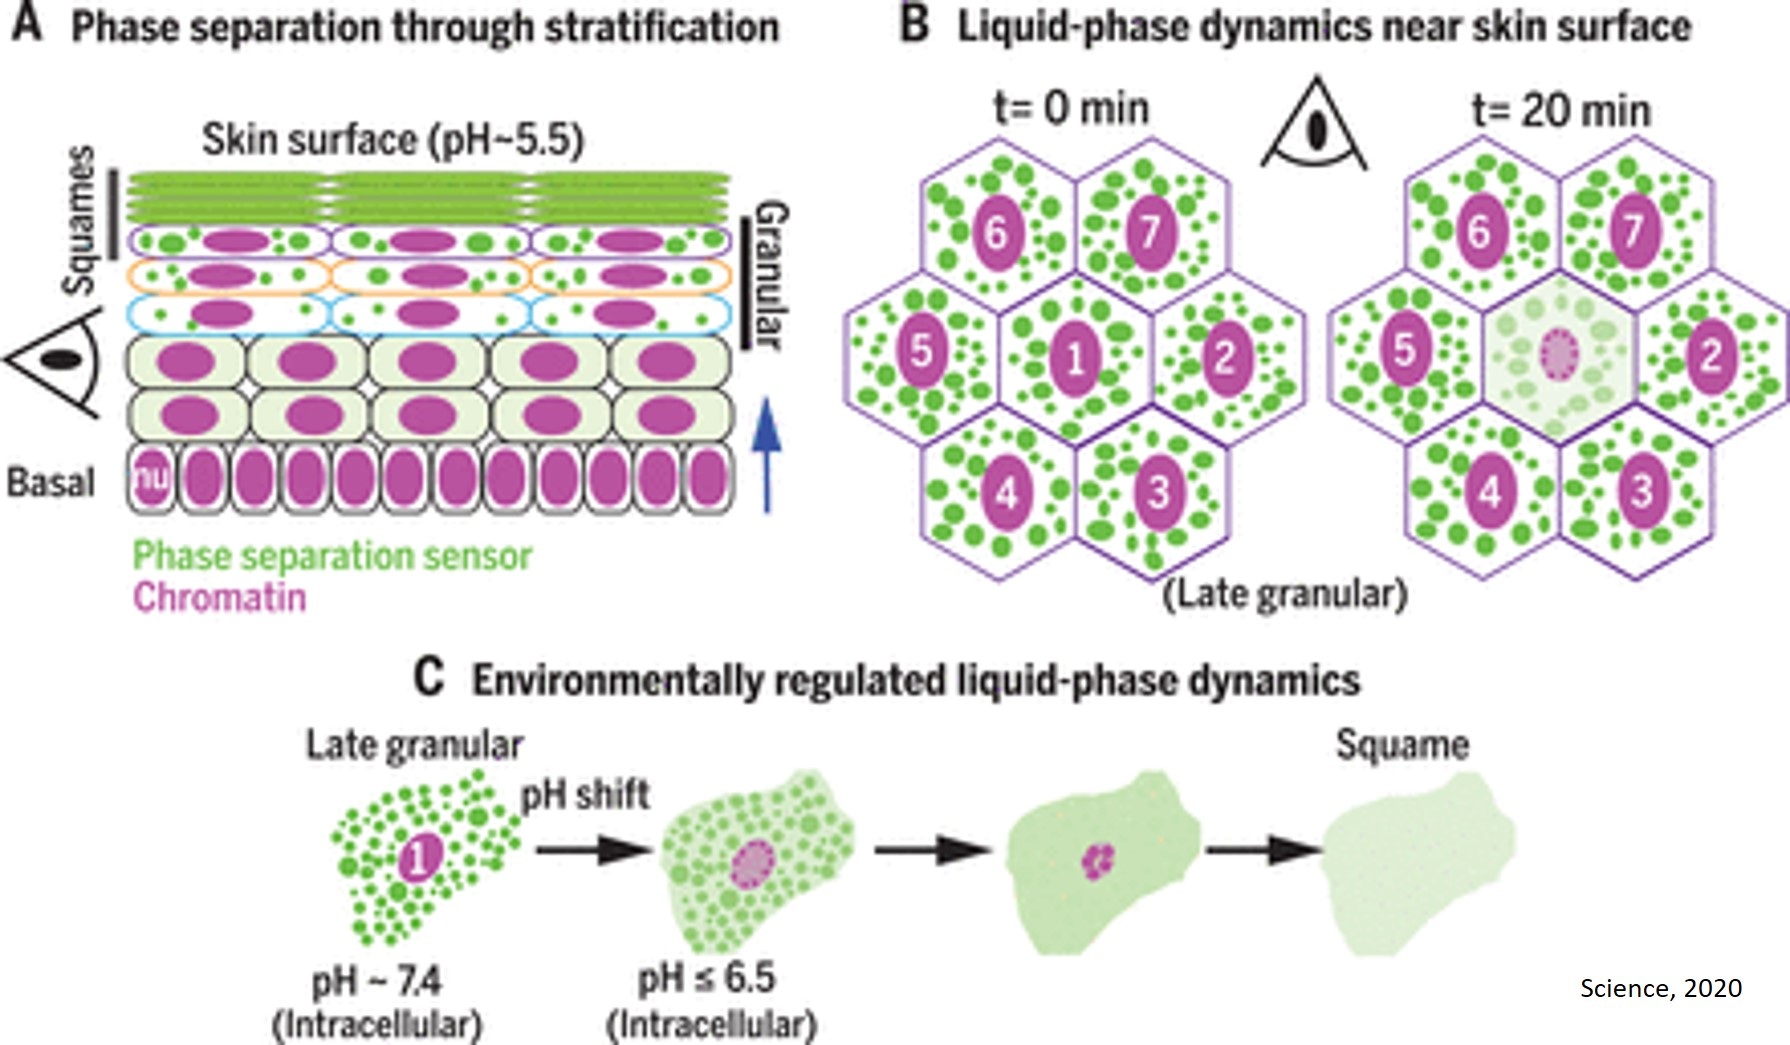 Liquid-liquid phase separation drives skin barrier formation